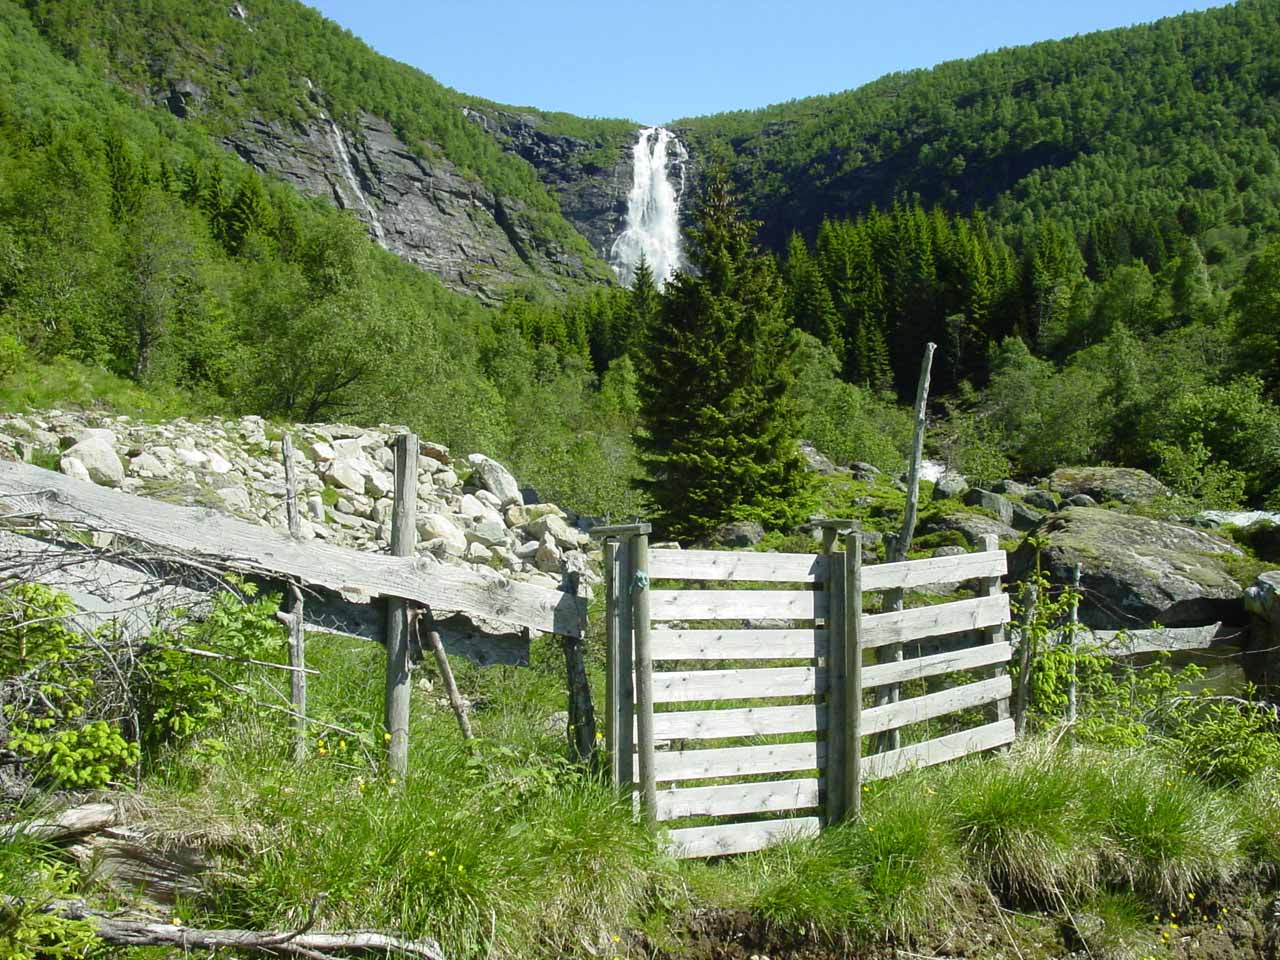 This fence prevented me from continuing further to get closer to Sanddalsfossen